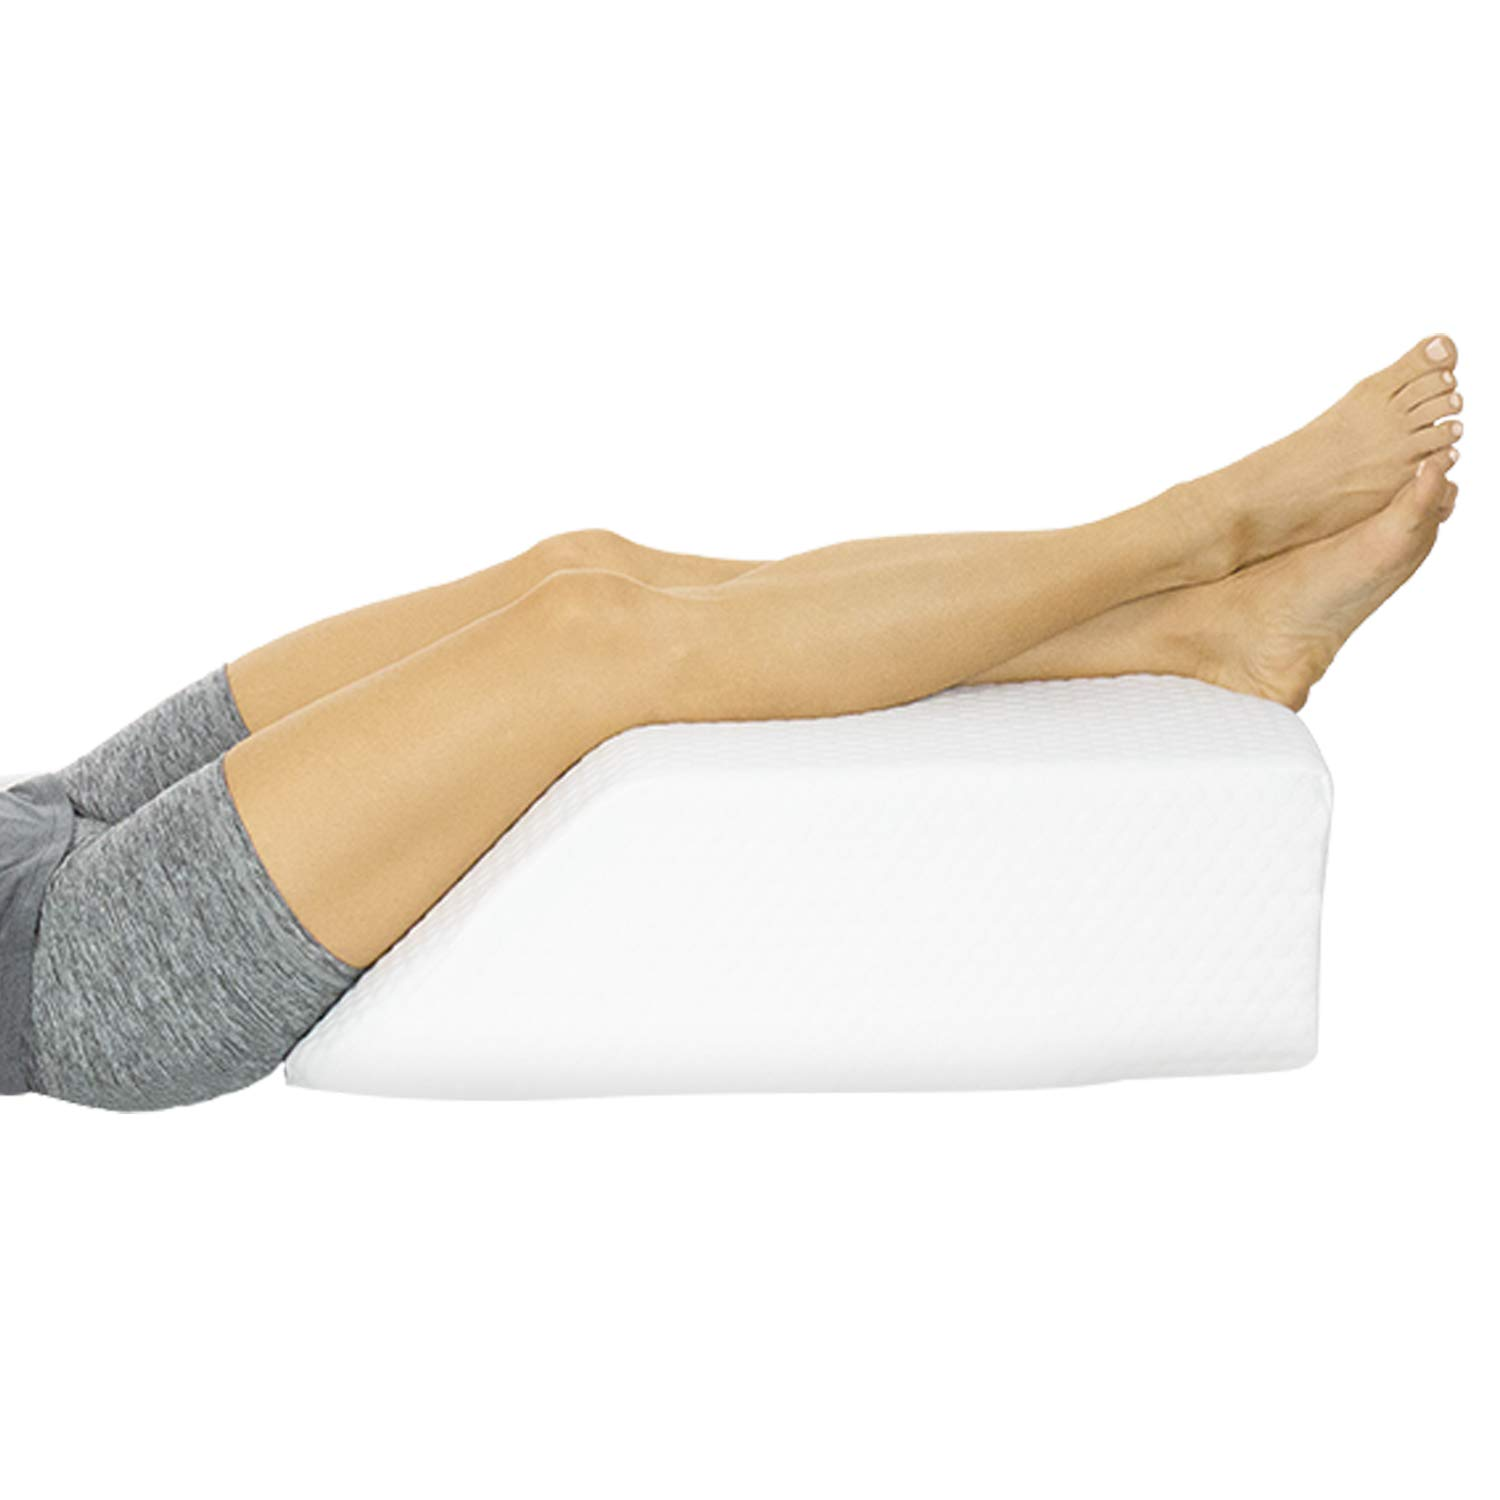 Xtra-Comfort Leg Elevation Pillow - Wedge Elevator Support Cushion for Sleeping, Pregnancy, Maternity, Elevated Prop Up Position, Back Pain, Foot Raise, Sciatica - Knee Elevating Incline Memory Foam by Xtra-Comfort